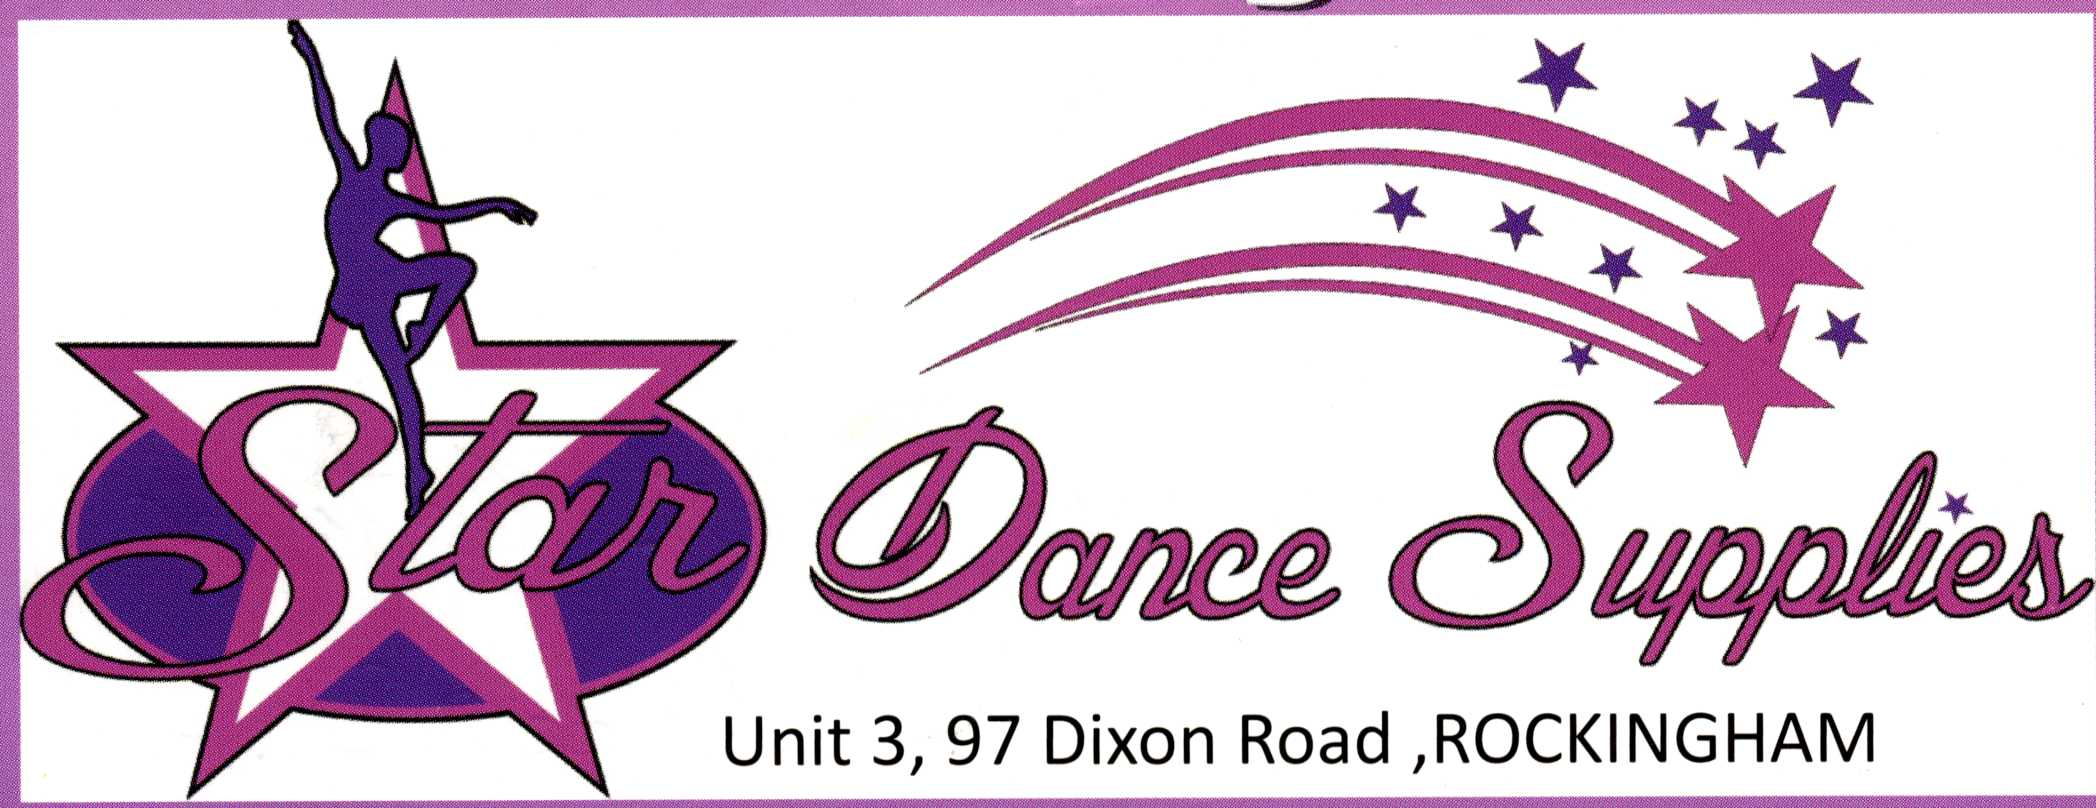 STAR DANCE SUPPLIES - AFFORDABLE DANCE SUPPLIES AND ACCESSORIES